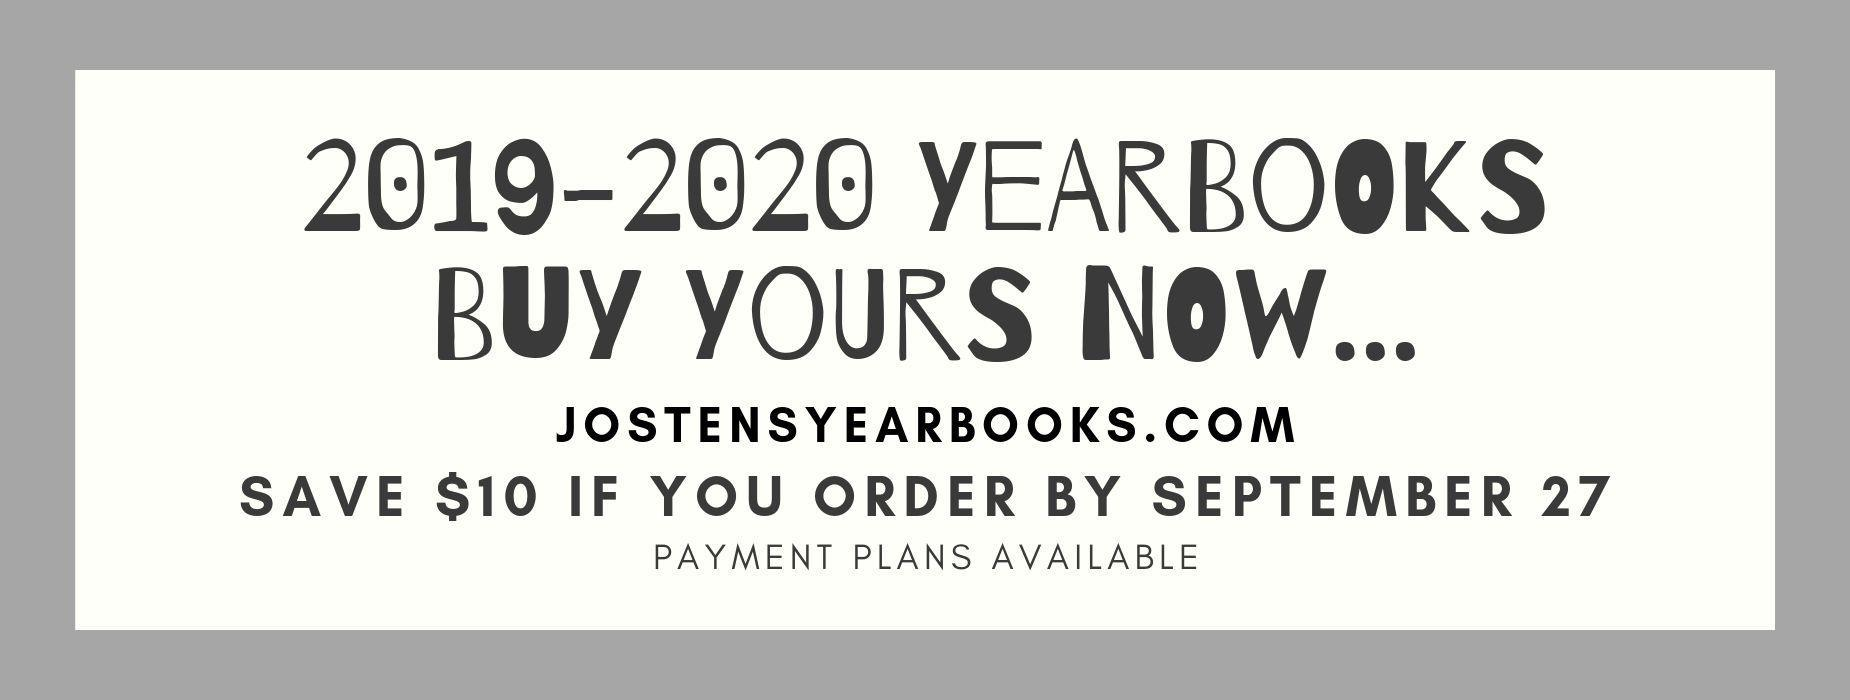 Order Early at jostensyearbooks.com